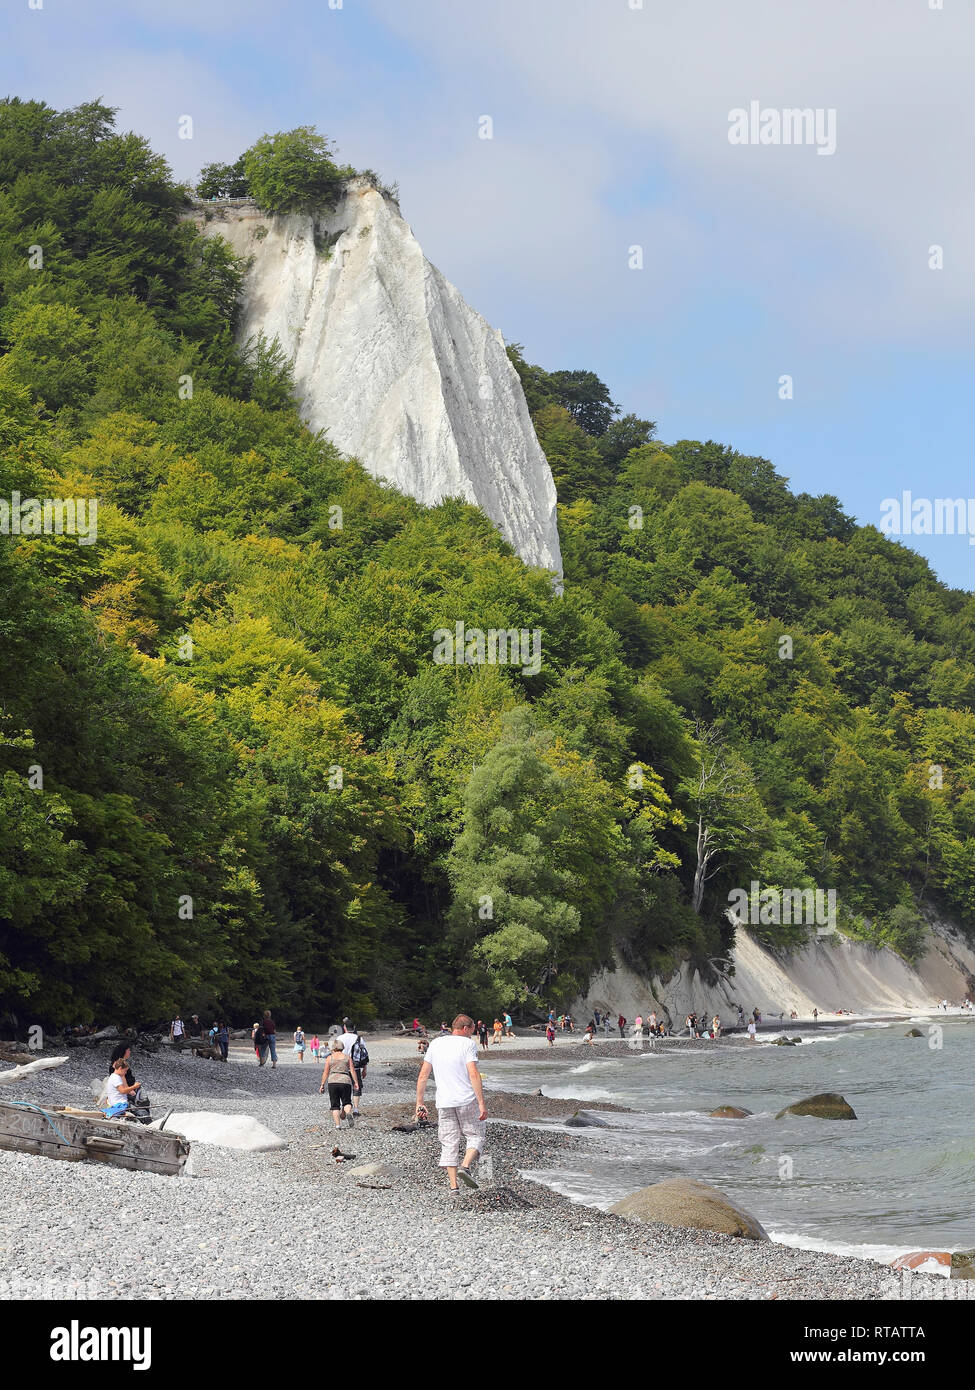 The Königsstuhl chalk cliff on the island of Rügen Stock Photo